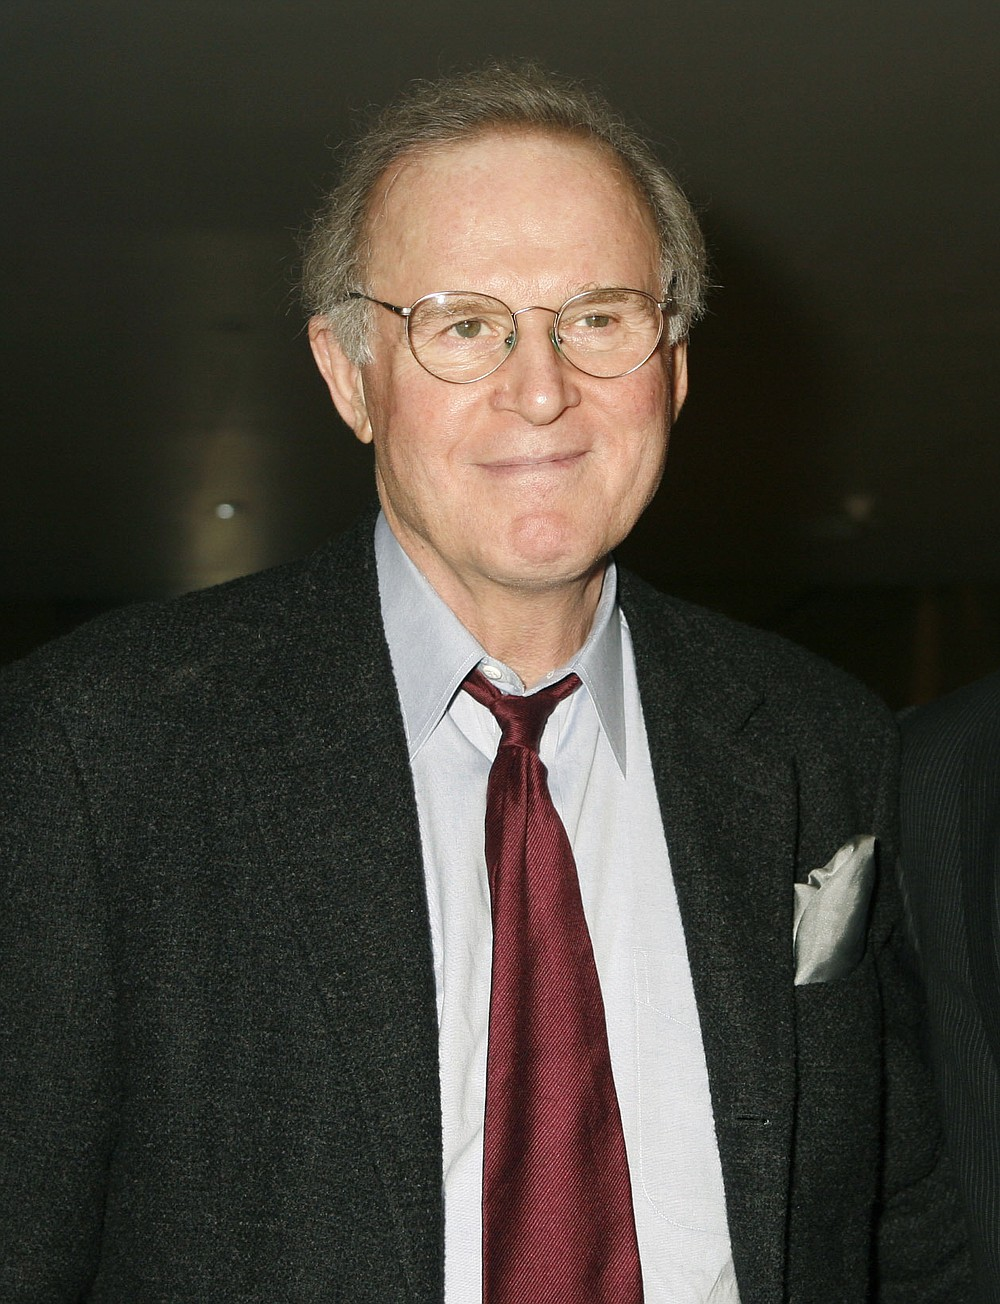 """FILE - Actor Charles Grodin appears at a screening of the environmental documentary """"Planet in Peril,"""" in New York on Oct. 8, 2007. Grodin, the offbeat actor and writer who scored as a newlywed cad in """"The Heartbreak Kid"""" and the father in the """"Beethoven"""" comedies, died Tuesday at his home in Wilton, Conn. from bone marrow cancer. He was 86. (AP Photo/Diane Bondareff, File)"""